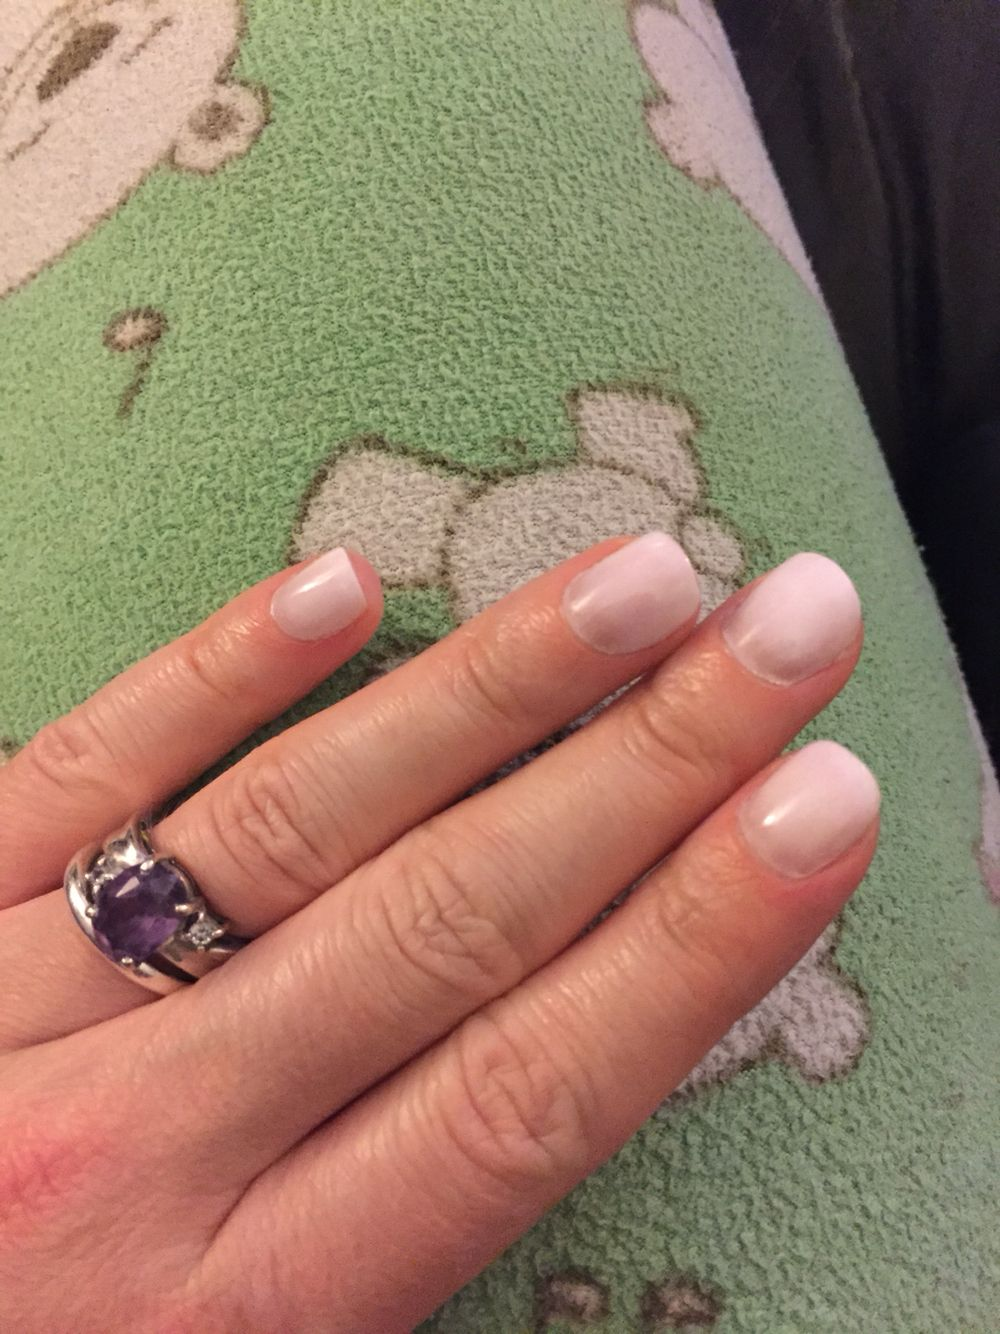 Loving my new experiment with the White EZ Dip powder nails ...